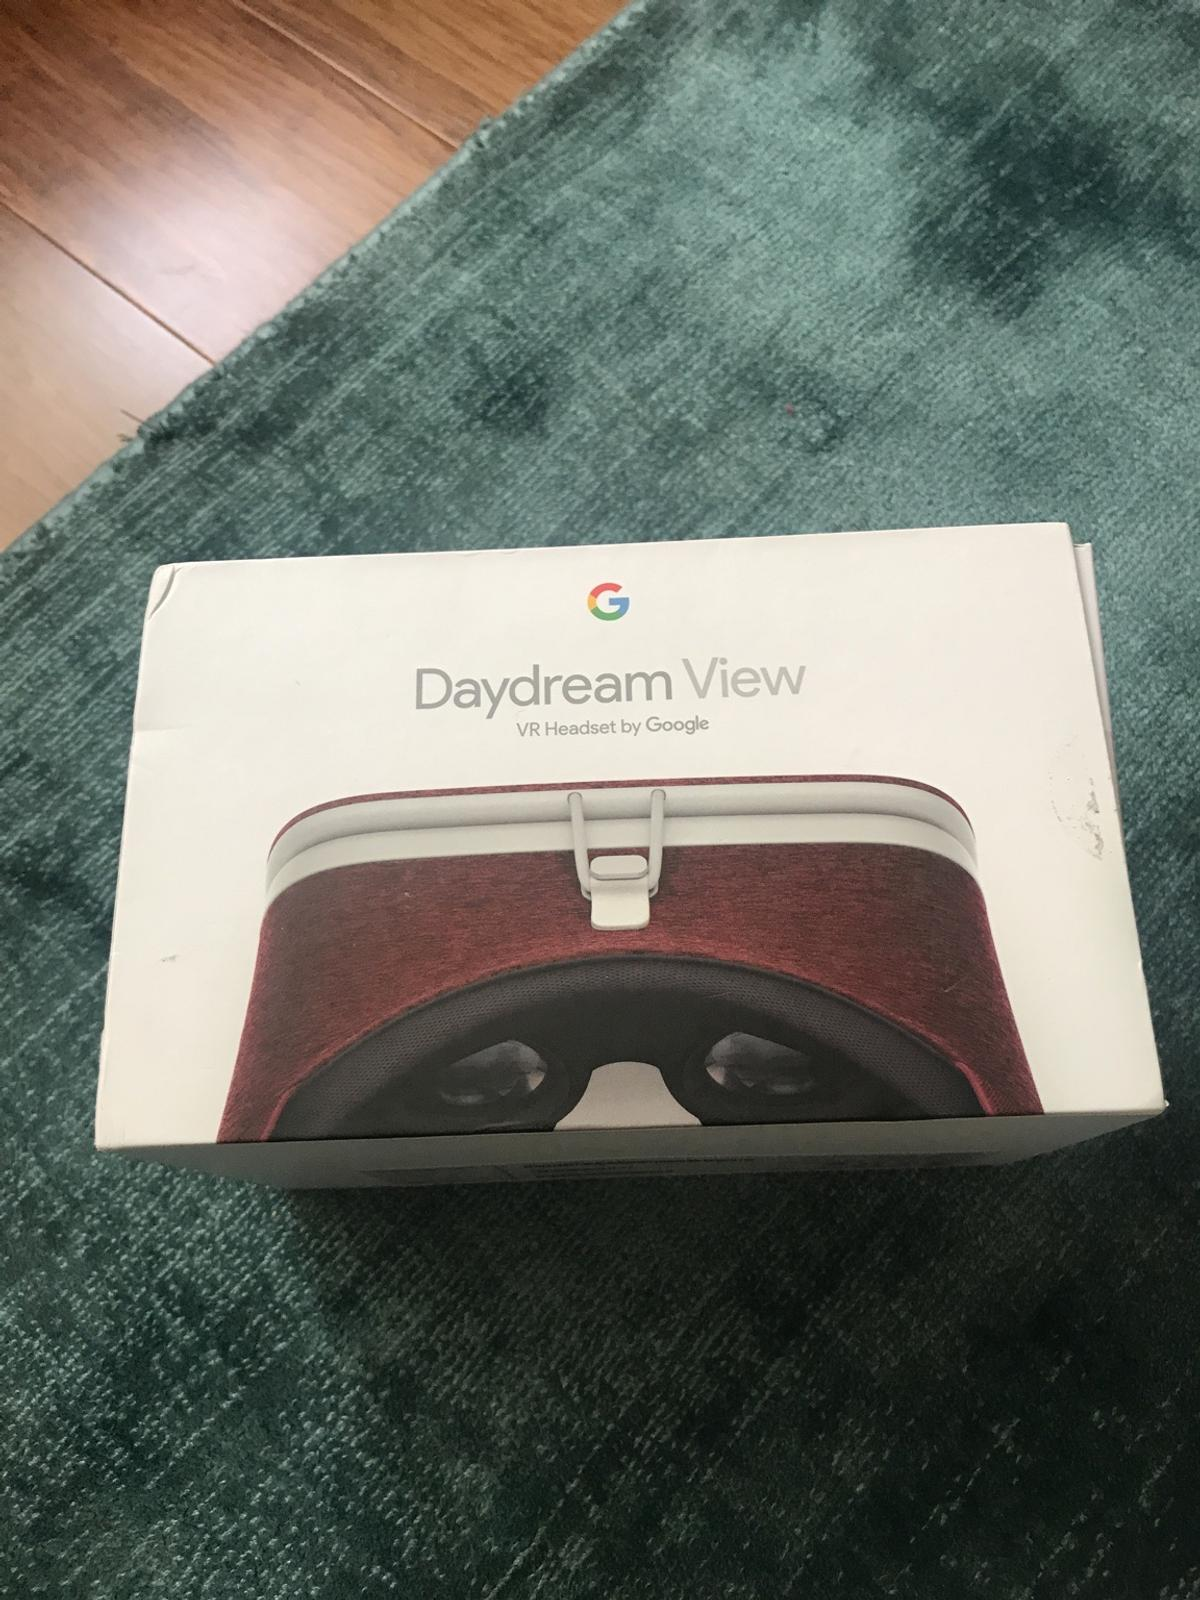 VR headset by google Never used. Boxed NEW